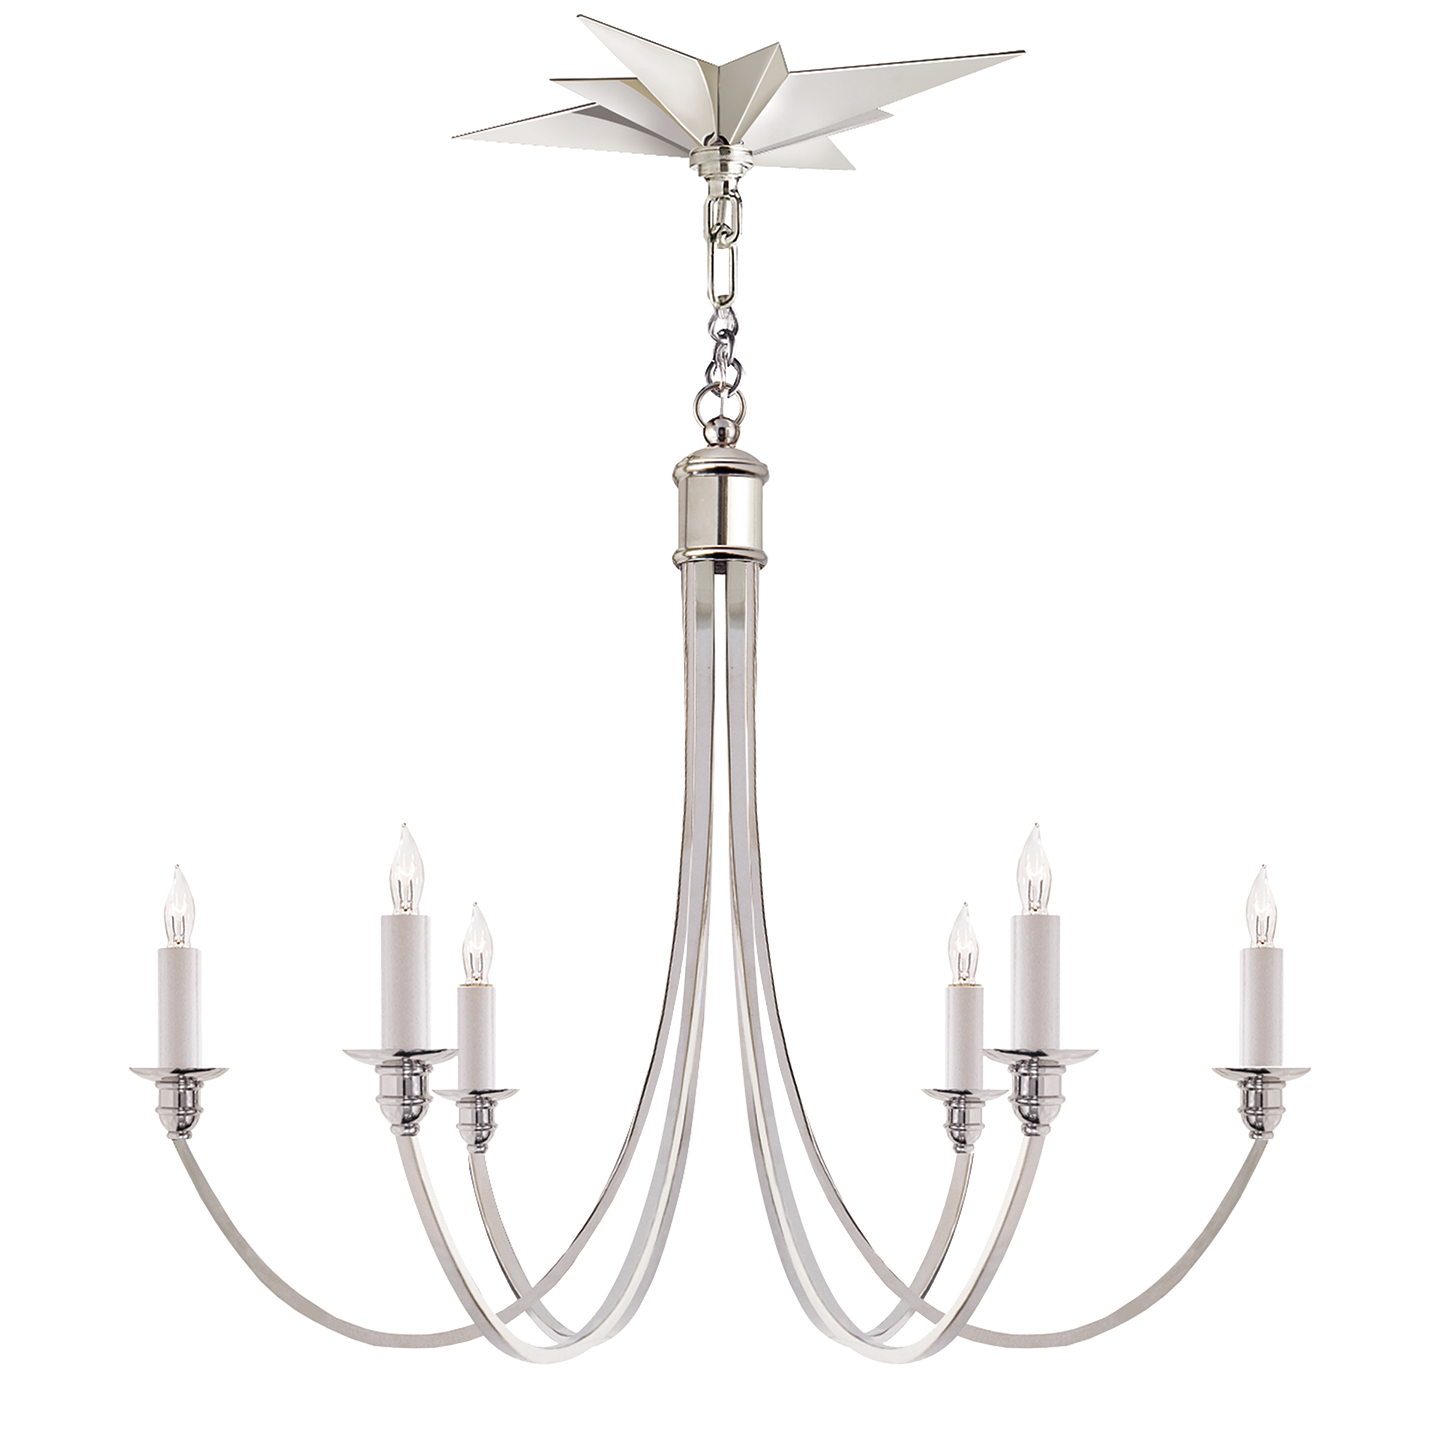 Polished Nickel lighting Pinterest